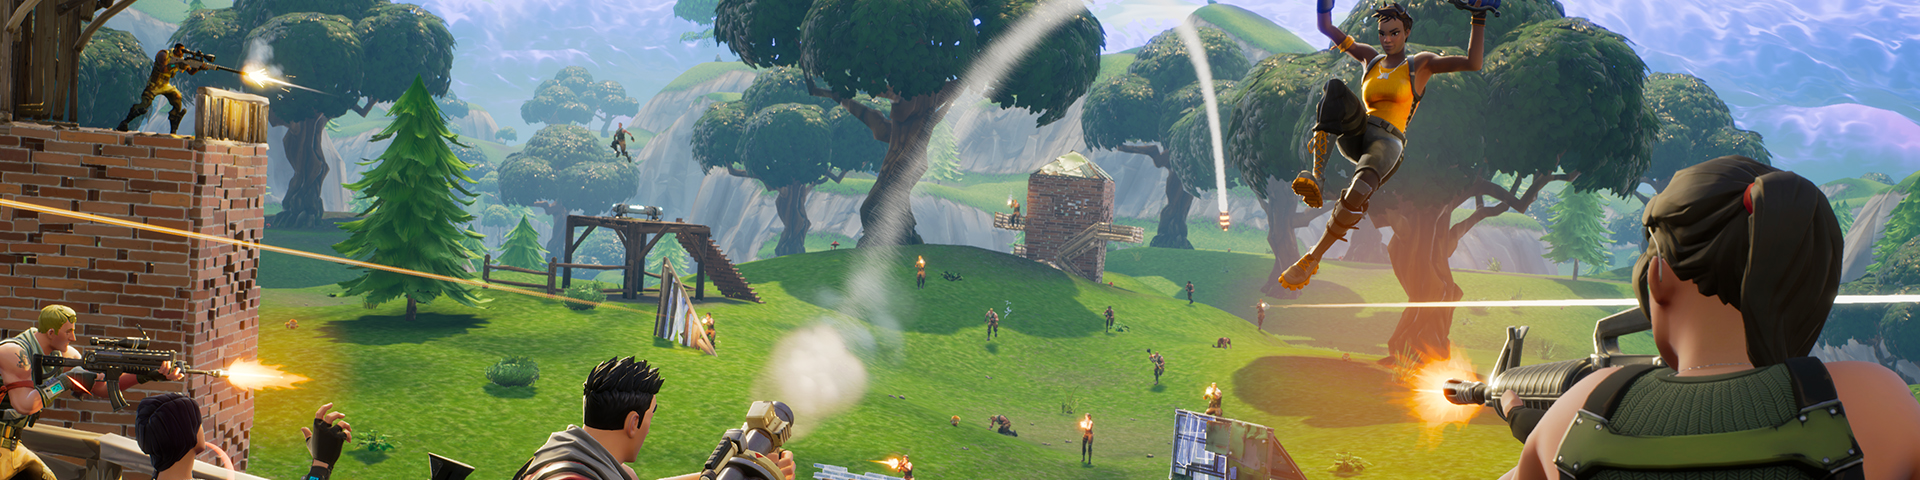 sources there are no current plans to bring fortnite battle royale to the switch siftd games - archange fortnite png